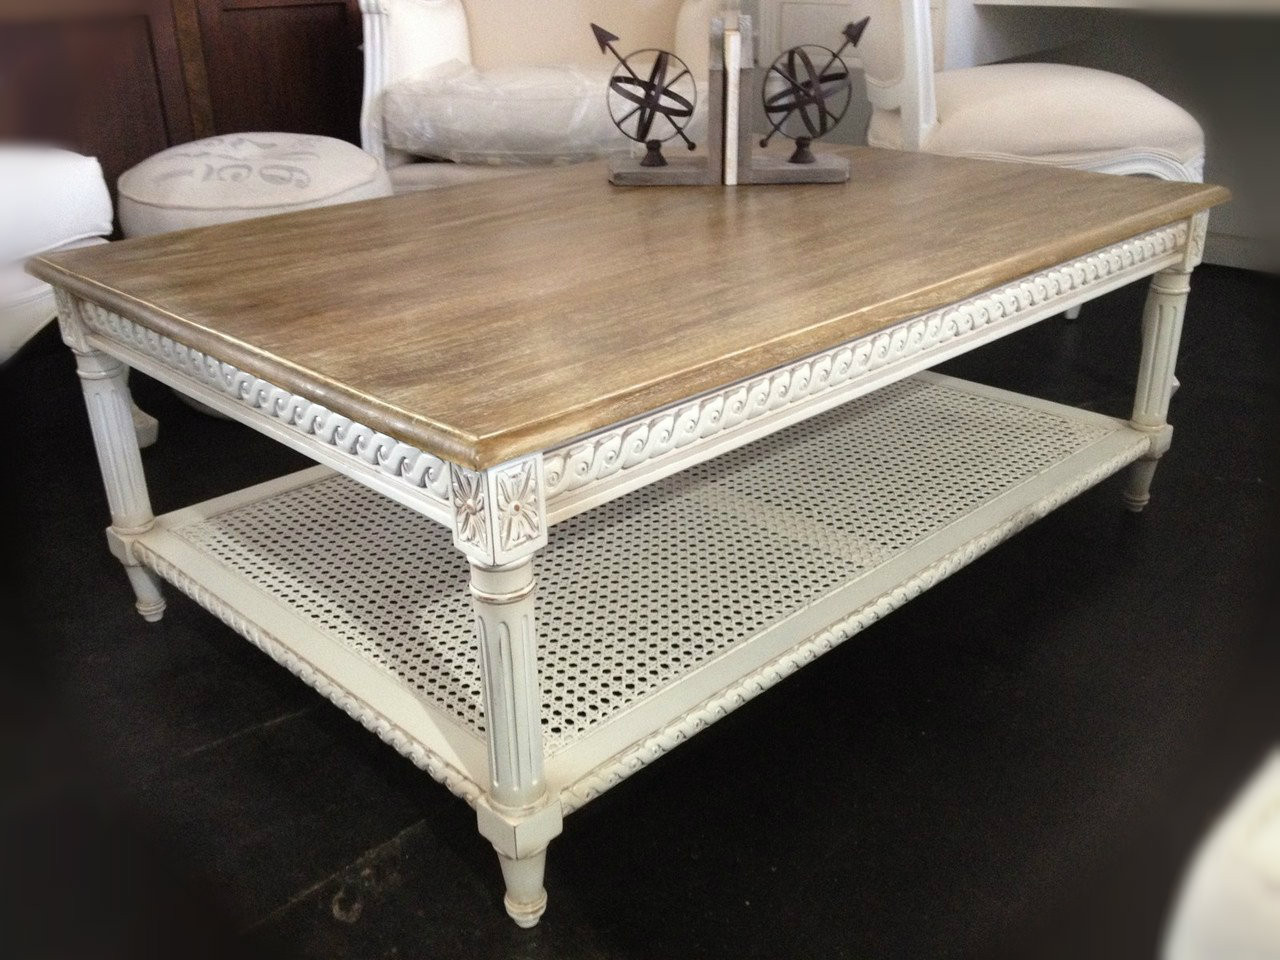 Hamptons Rattan Coffee Table Distressed White With Limewash Top Sold Out Canalside Interiors